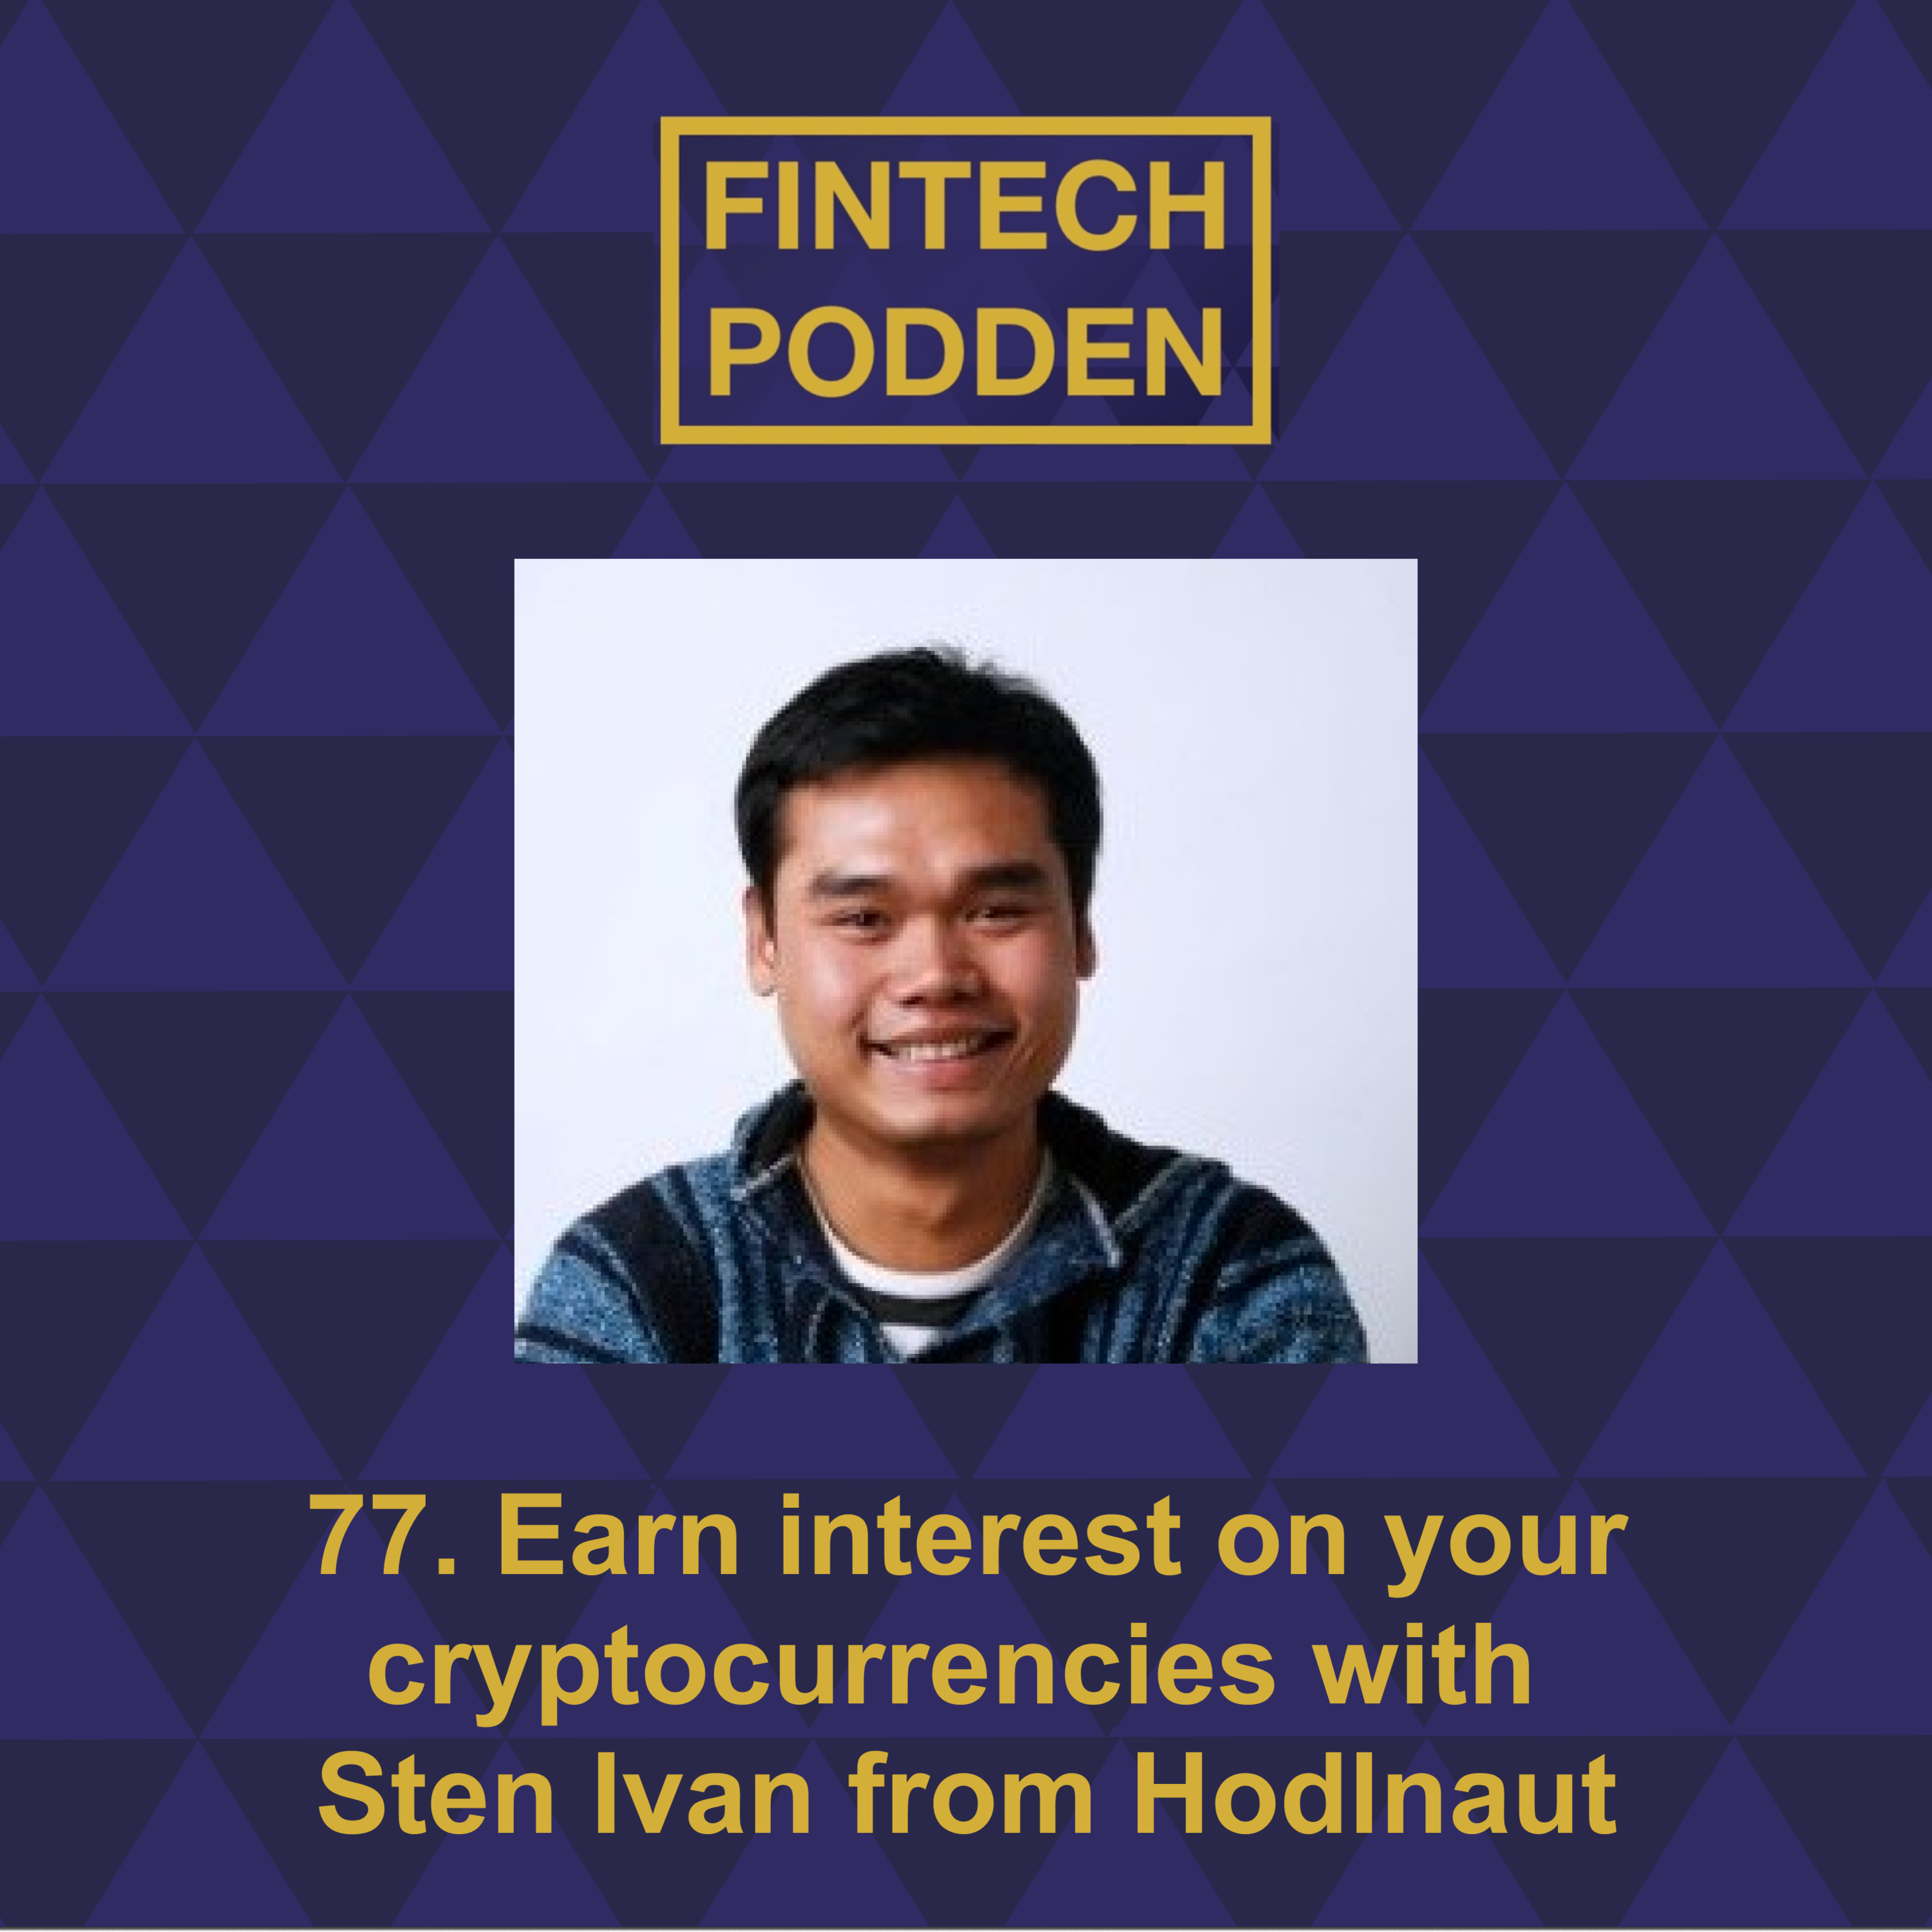 77. Earn interest on your cryptocurrencies with Sten Ivan from Hodlnaut